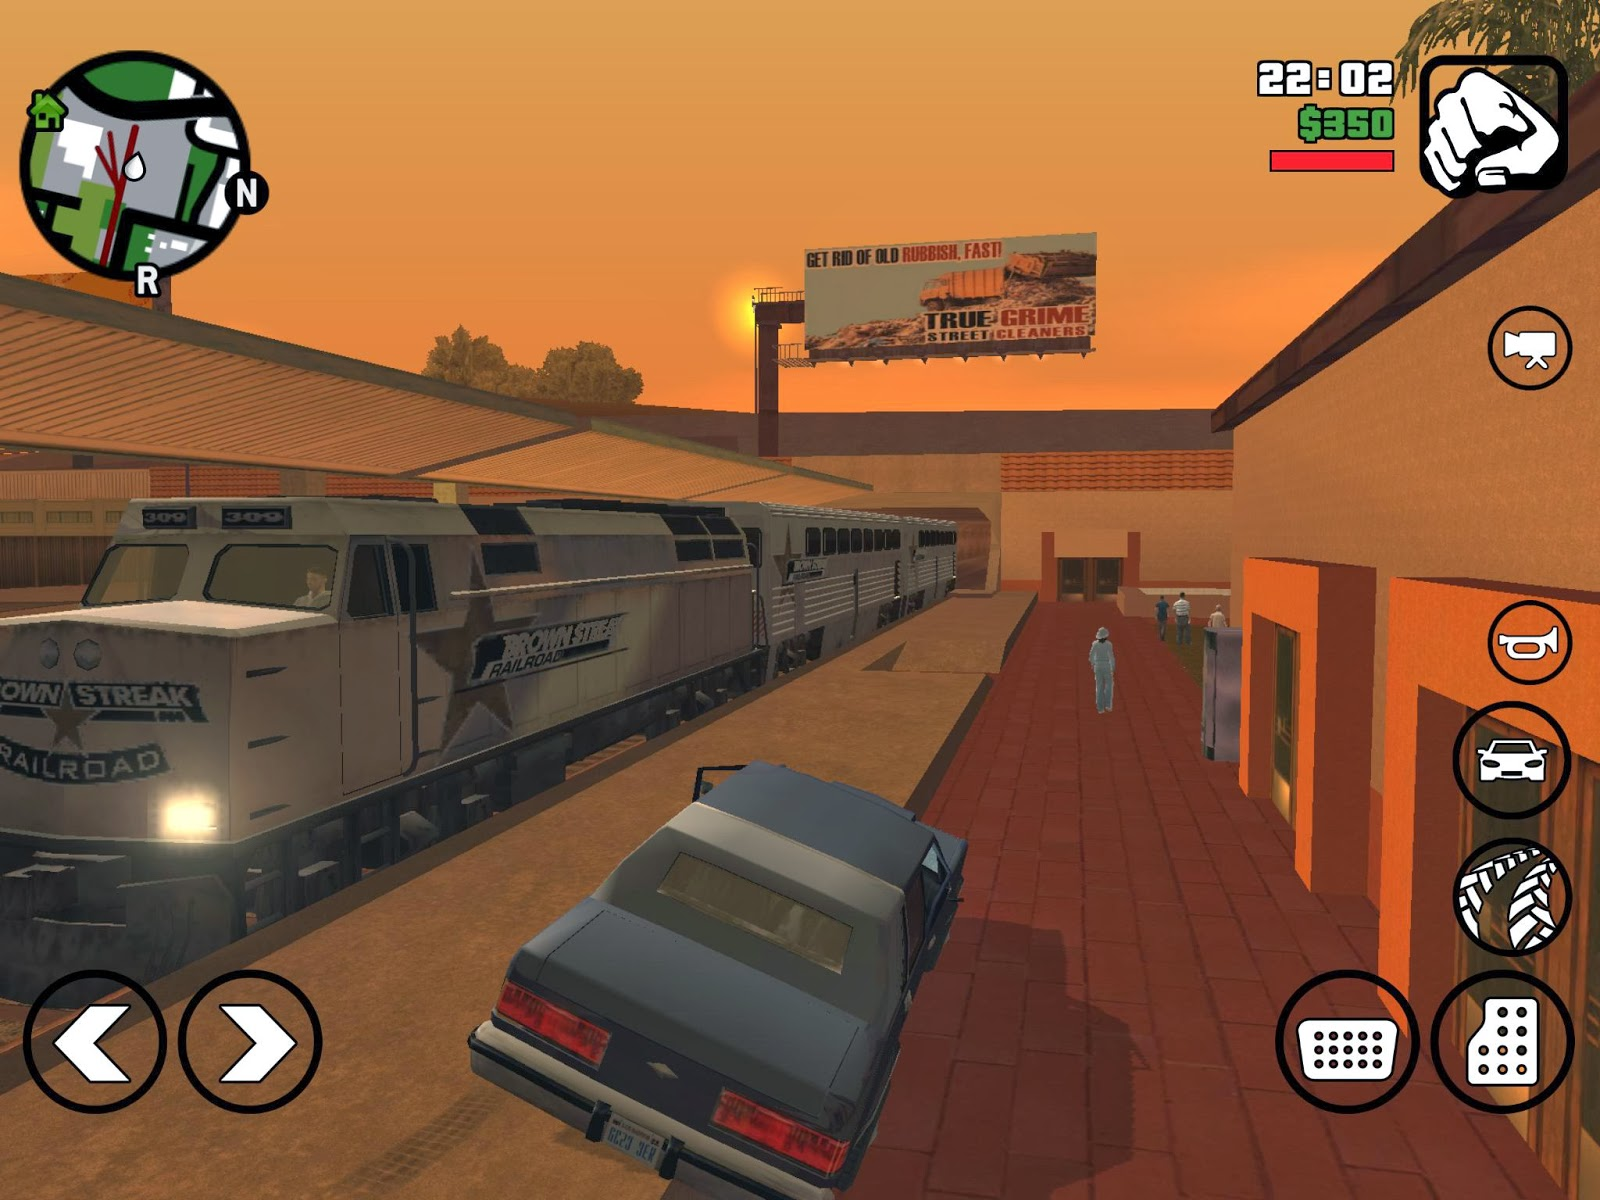 Grand Theft Auto III apk data v Android (MEGA)